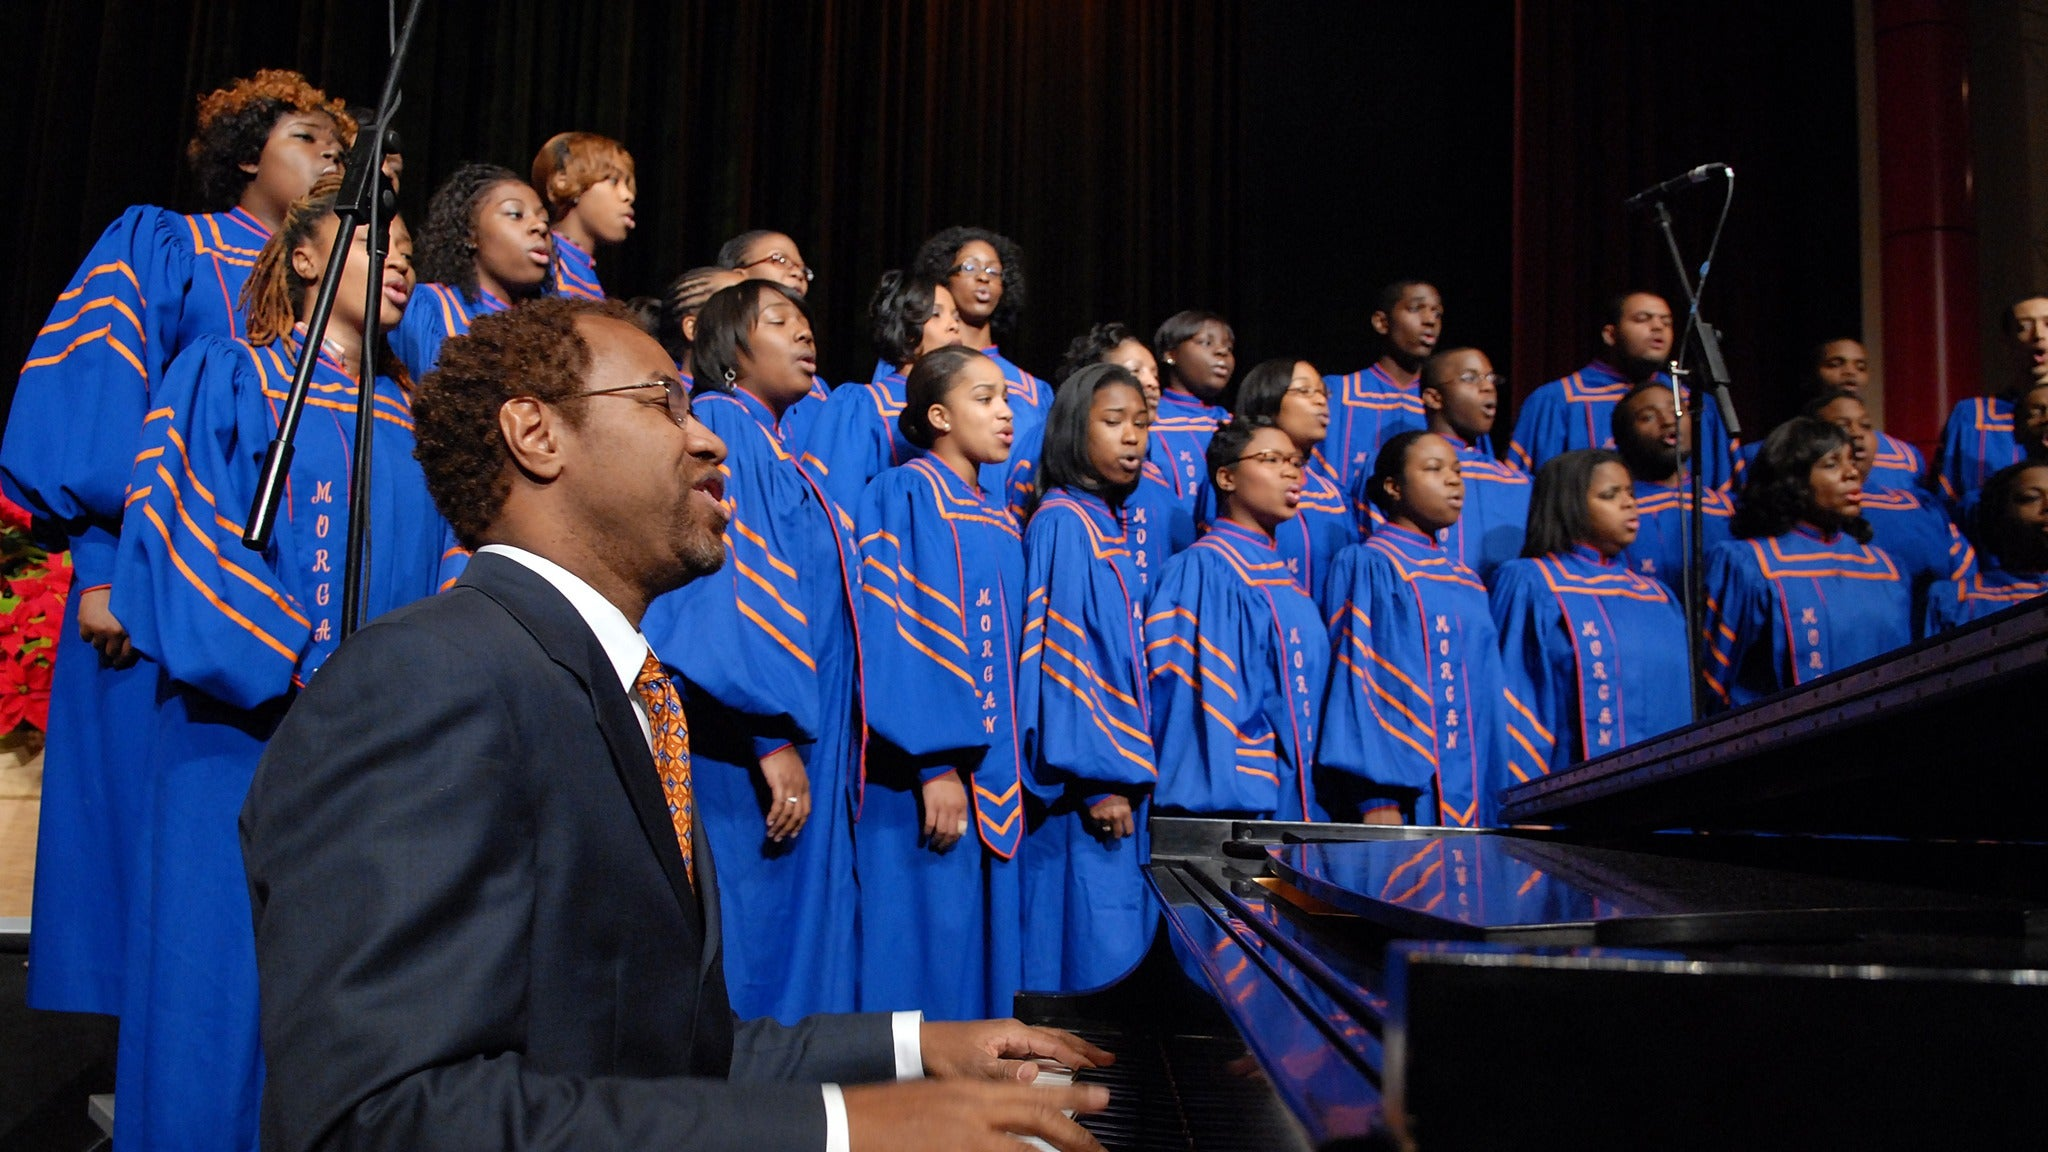 MORGAN STATE UNIVERSITY CHOIR ANNUAL CHRISTMAS CONCERT